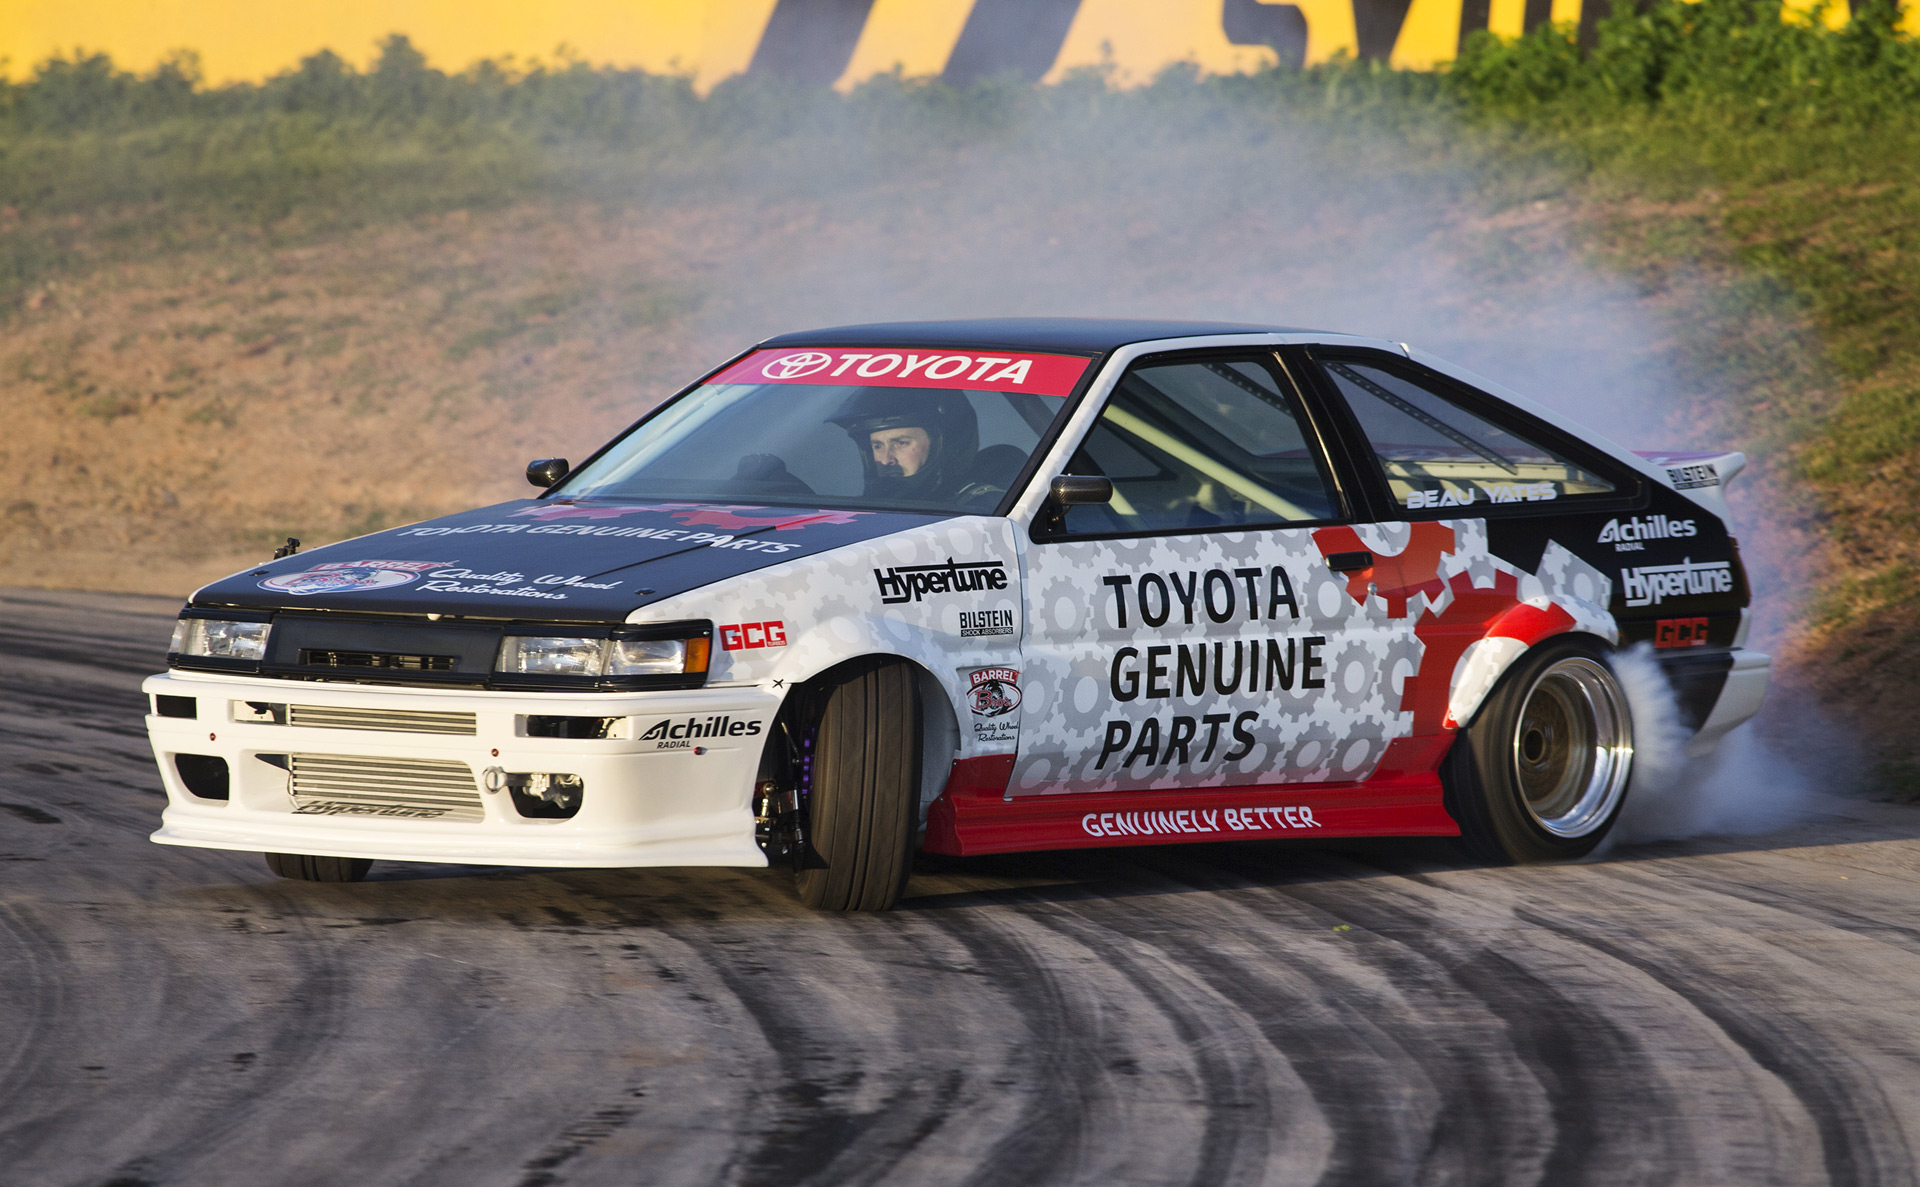 1106684 drift King Keiichi Tsuchiya Reveals Restored Toyota Ae86 on bmw fast cars